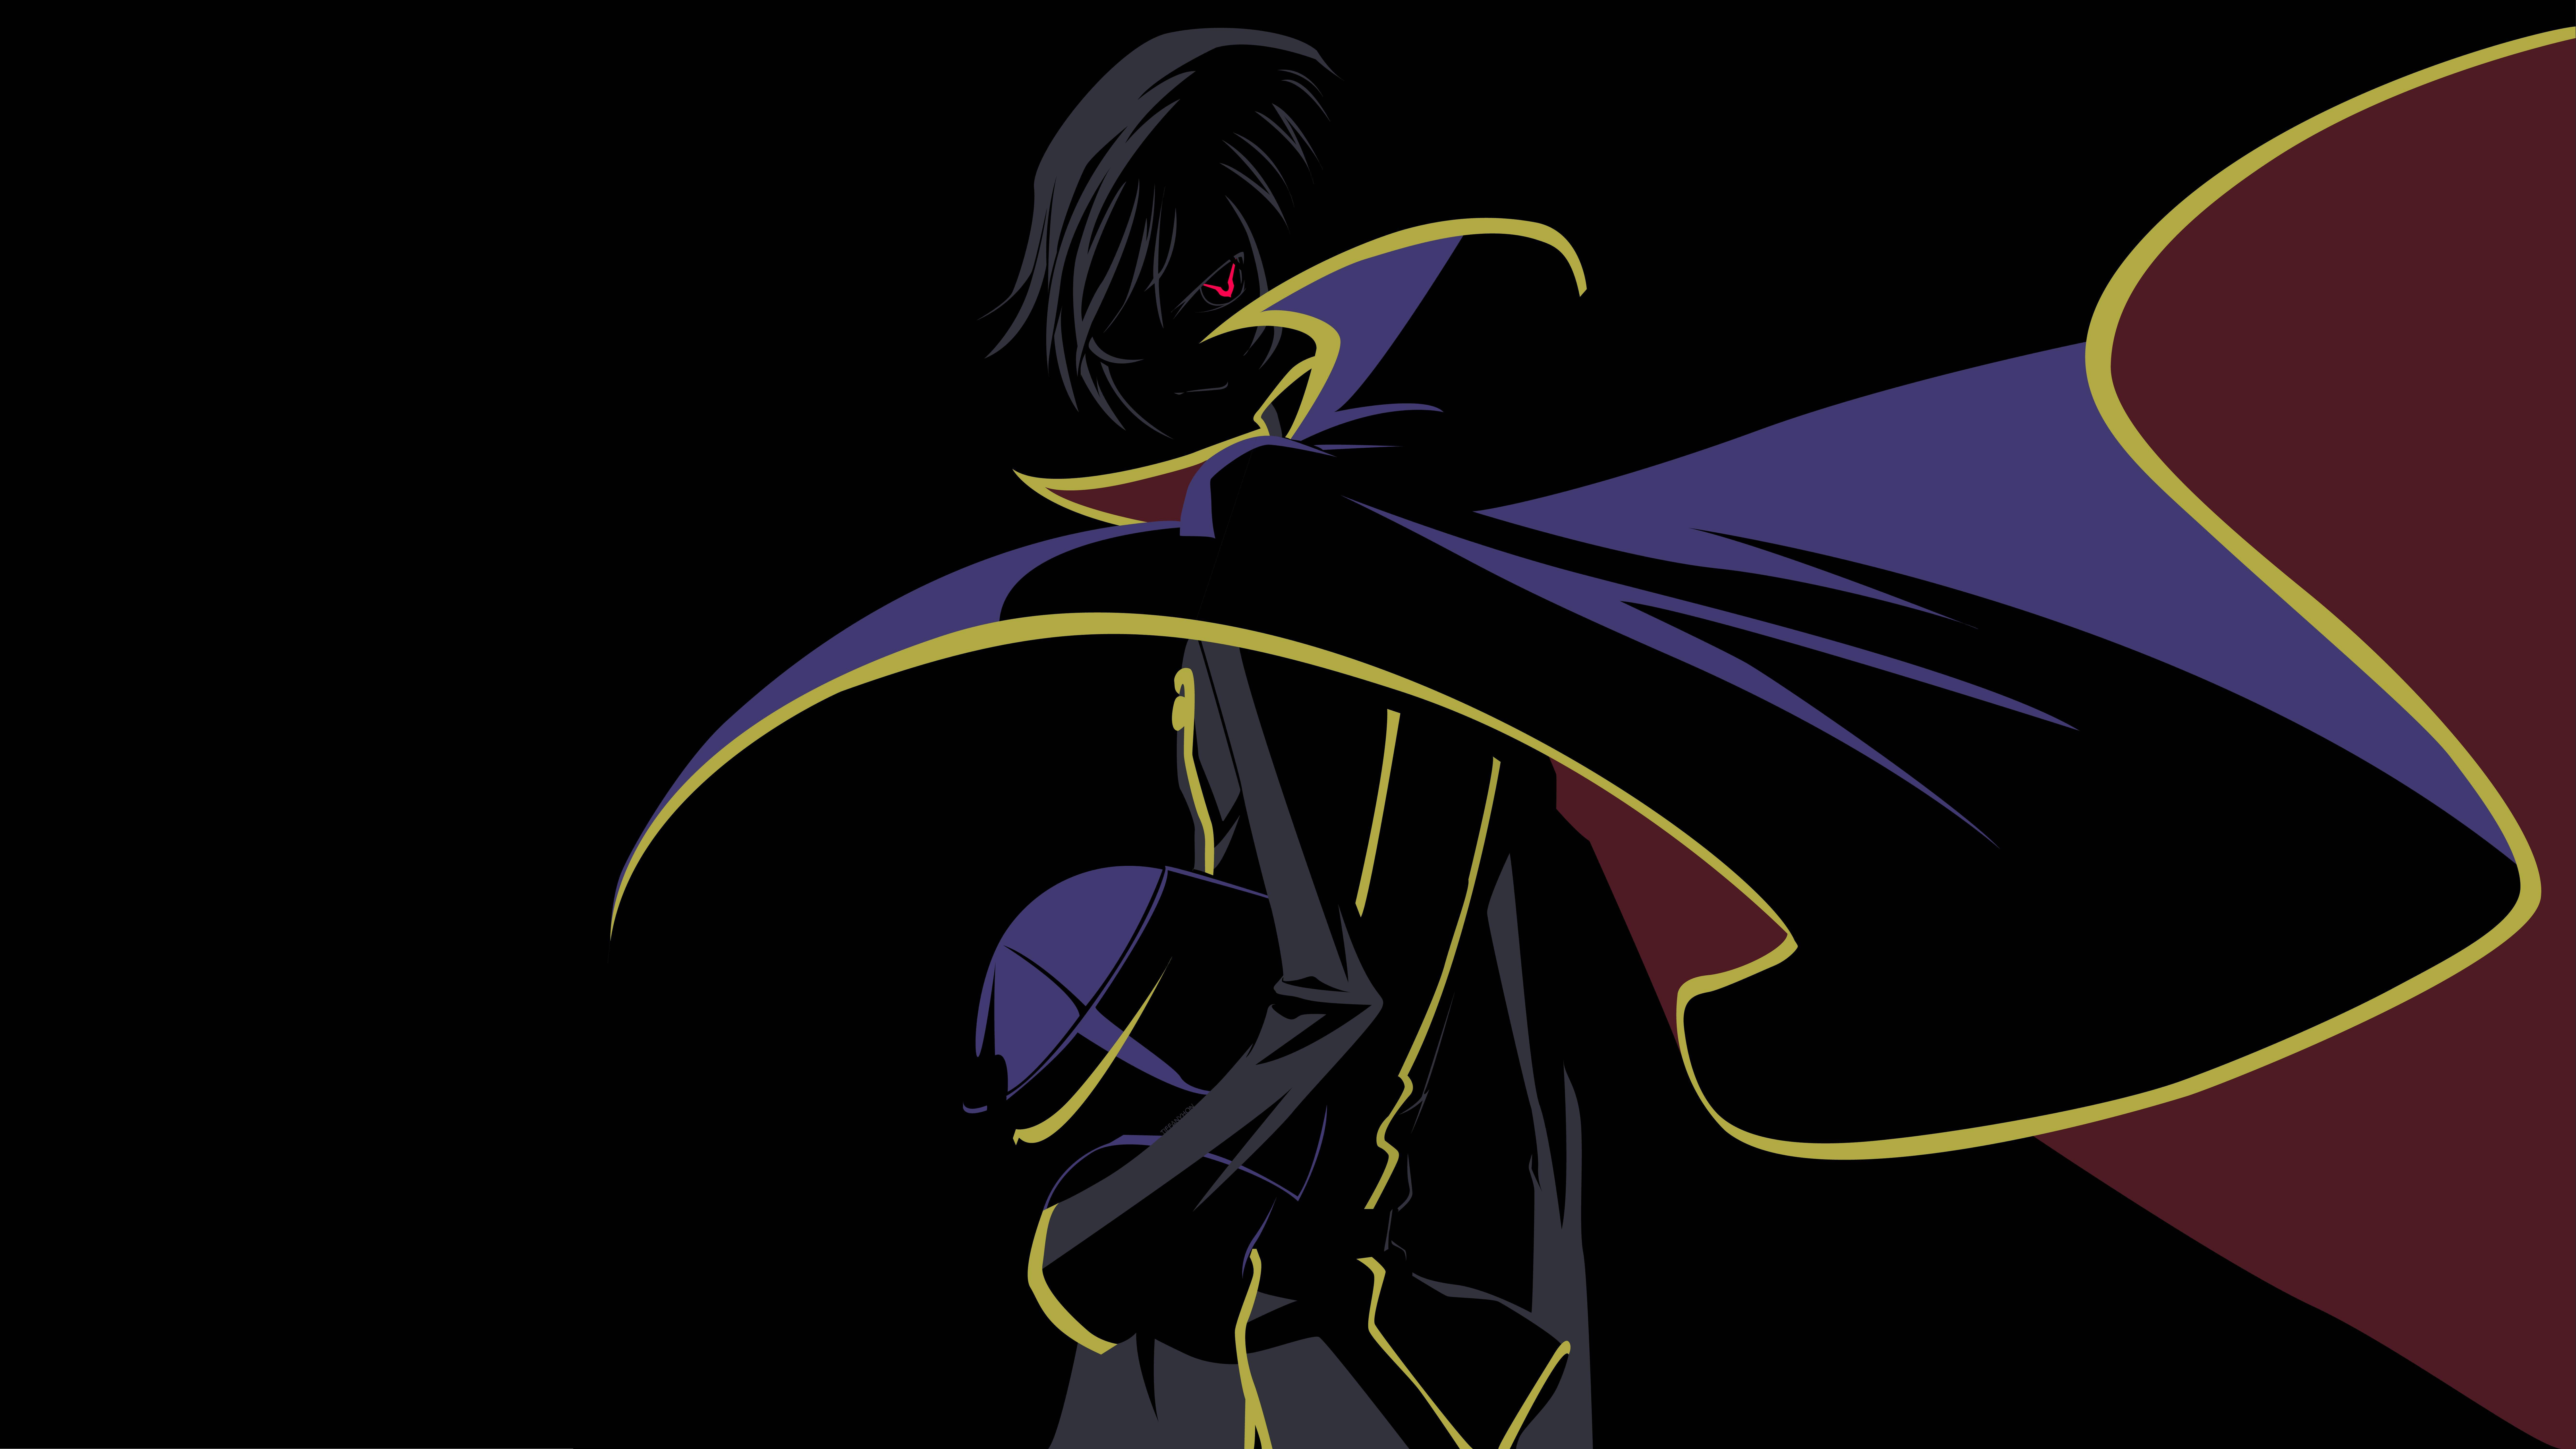 35 Best Free Code Geass IPhone Wallpapers